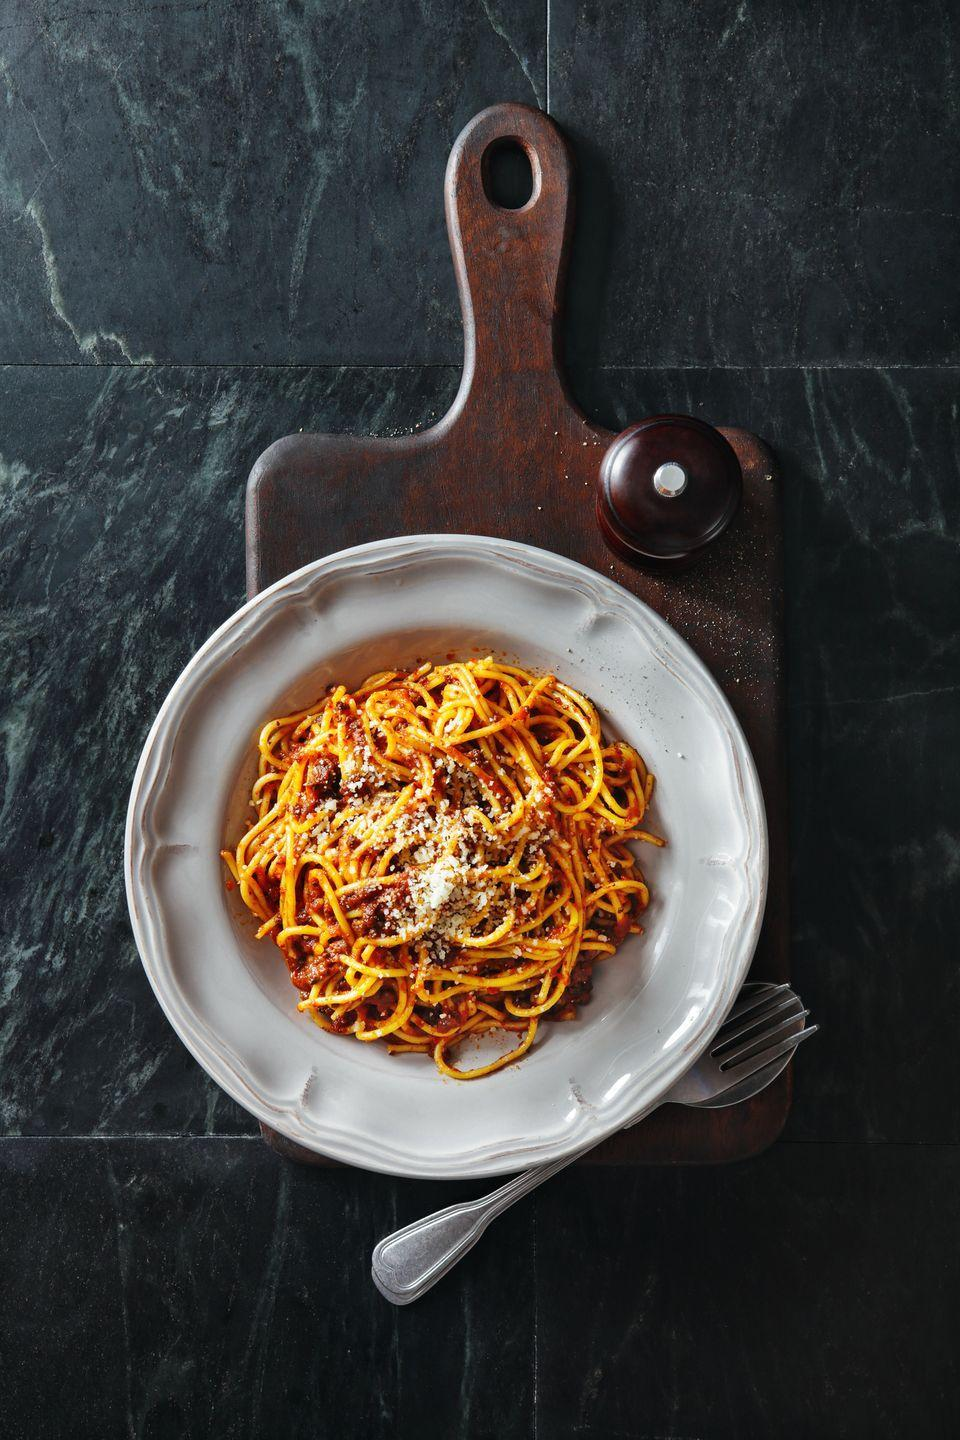 """<p><strong>Recipe: <a href=""""https://www.goodhousekeeping.com/uk/food/recipes/a536276/spaghetti-bolognese/"""" rel=""""nofollow noopener"""" target=""""_blank"""" data-ylk=""""slk:Spaghetti Bolognese"""" class=""""link rapid-noclick-resp"""">Spaghetti Bolognese</a></strong></p>"""